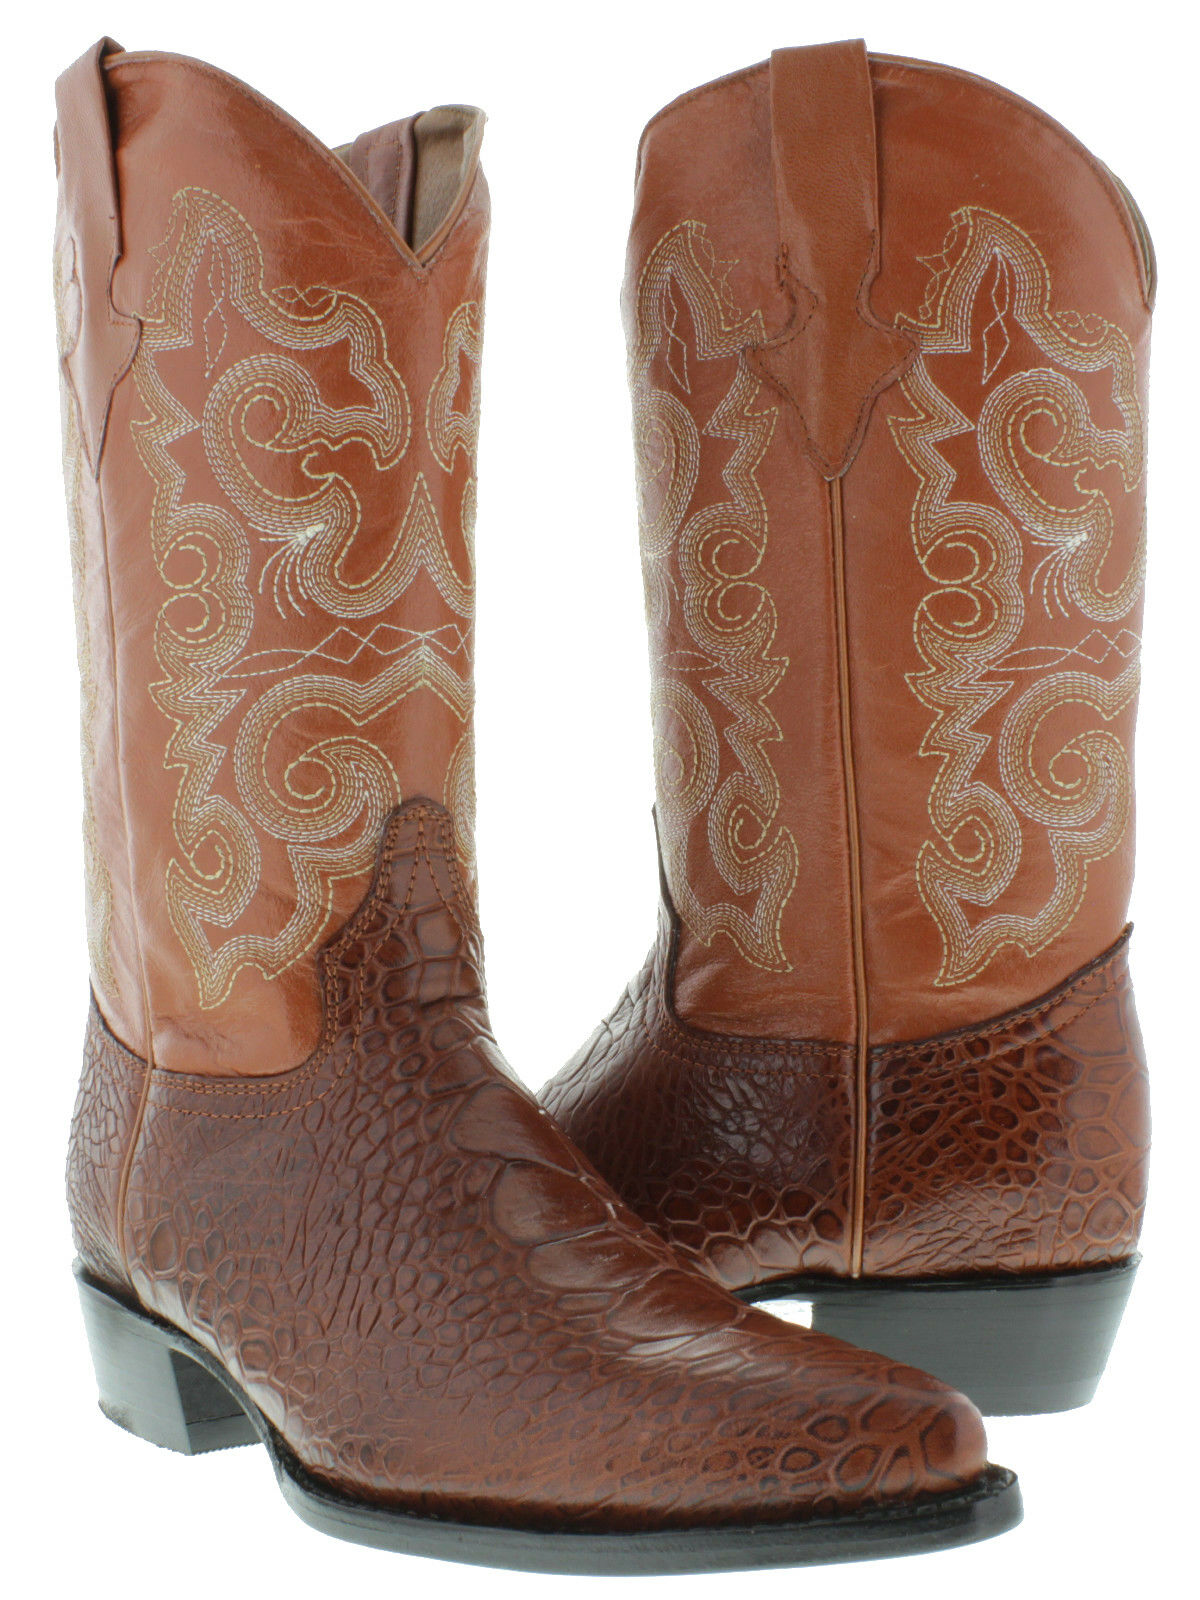 Mens Cognac Turtle Belly Print Western Cowboy Exotic Leather Rodeo Boots J Toe